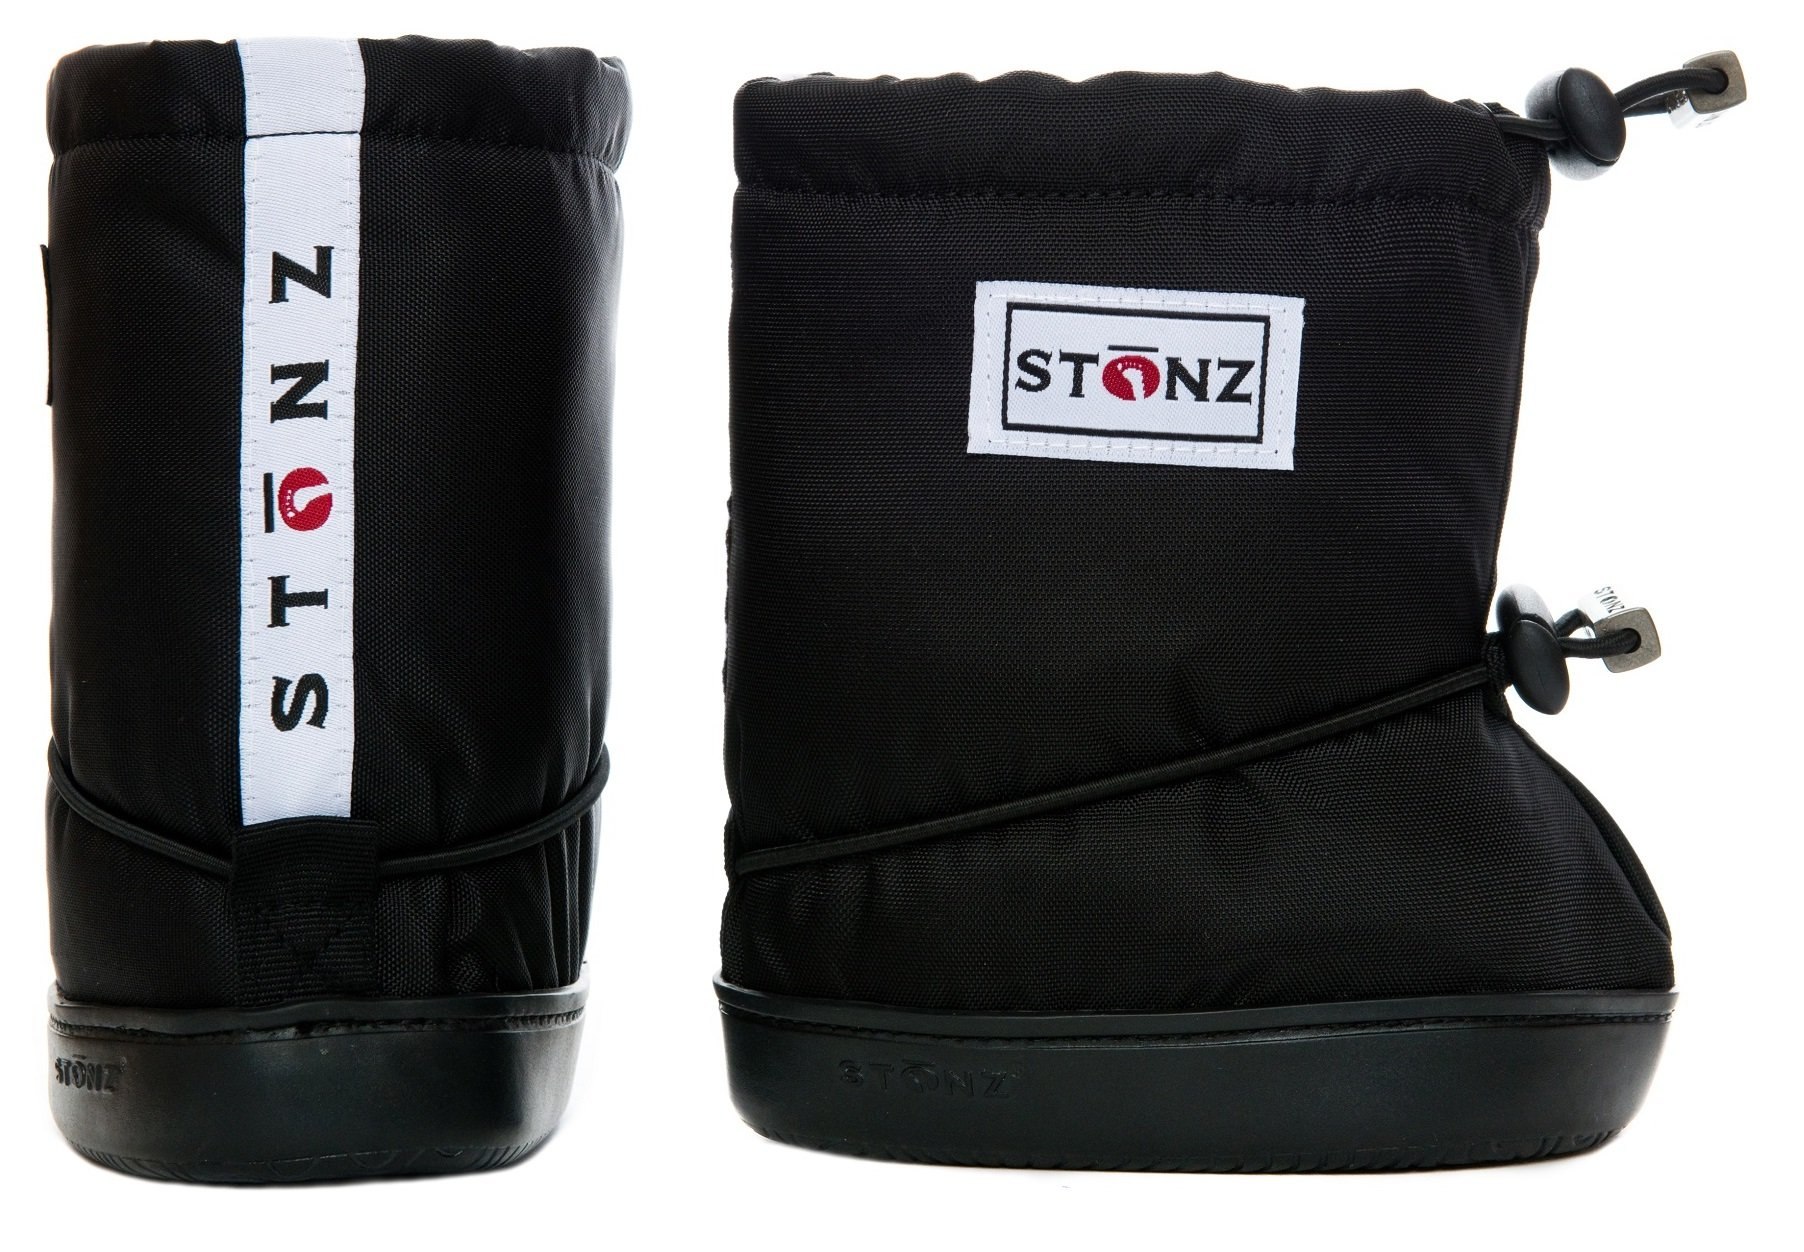 Stonz Three Season STAY-On Baby Booties, For Bare Feet or Shoes, For Mild or Cold Snow Weather, Black Large